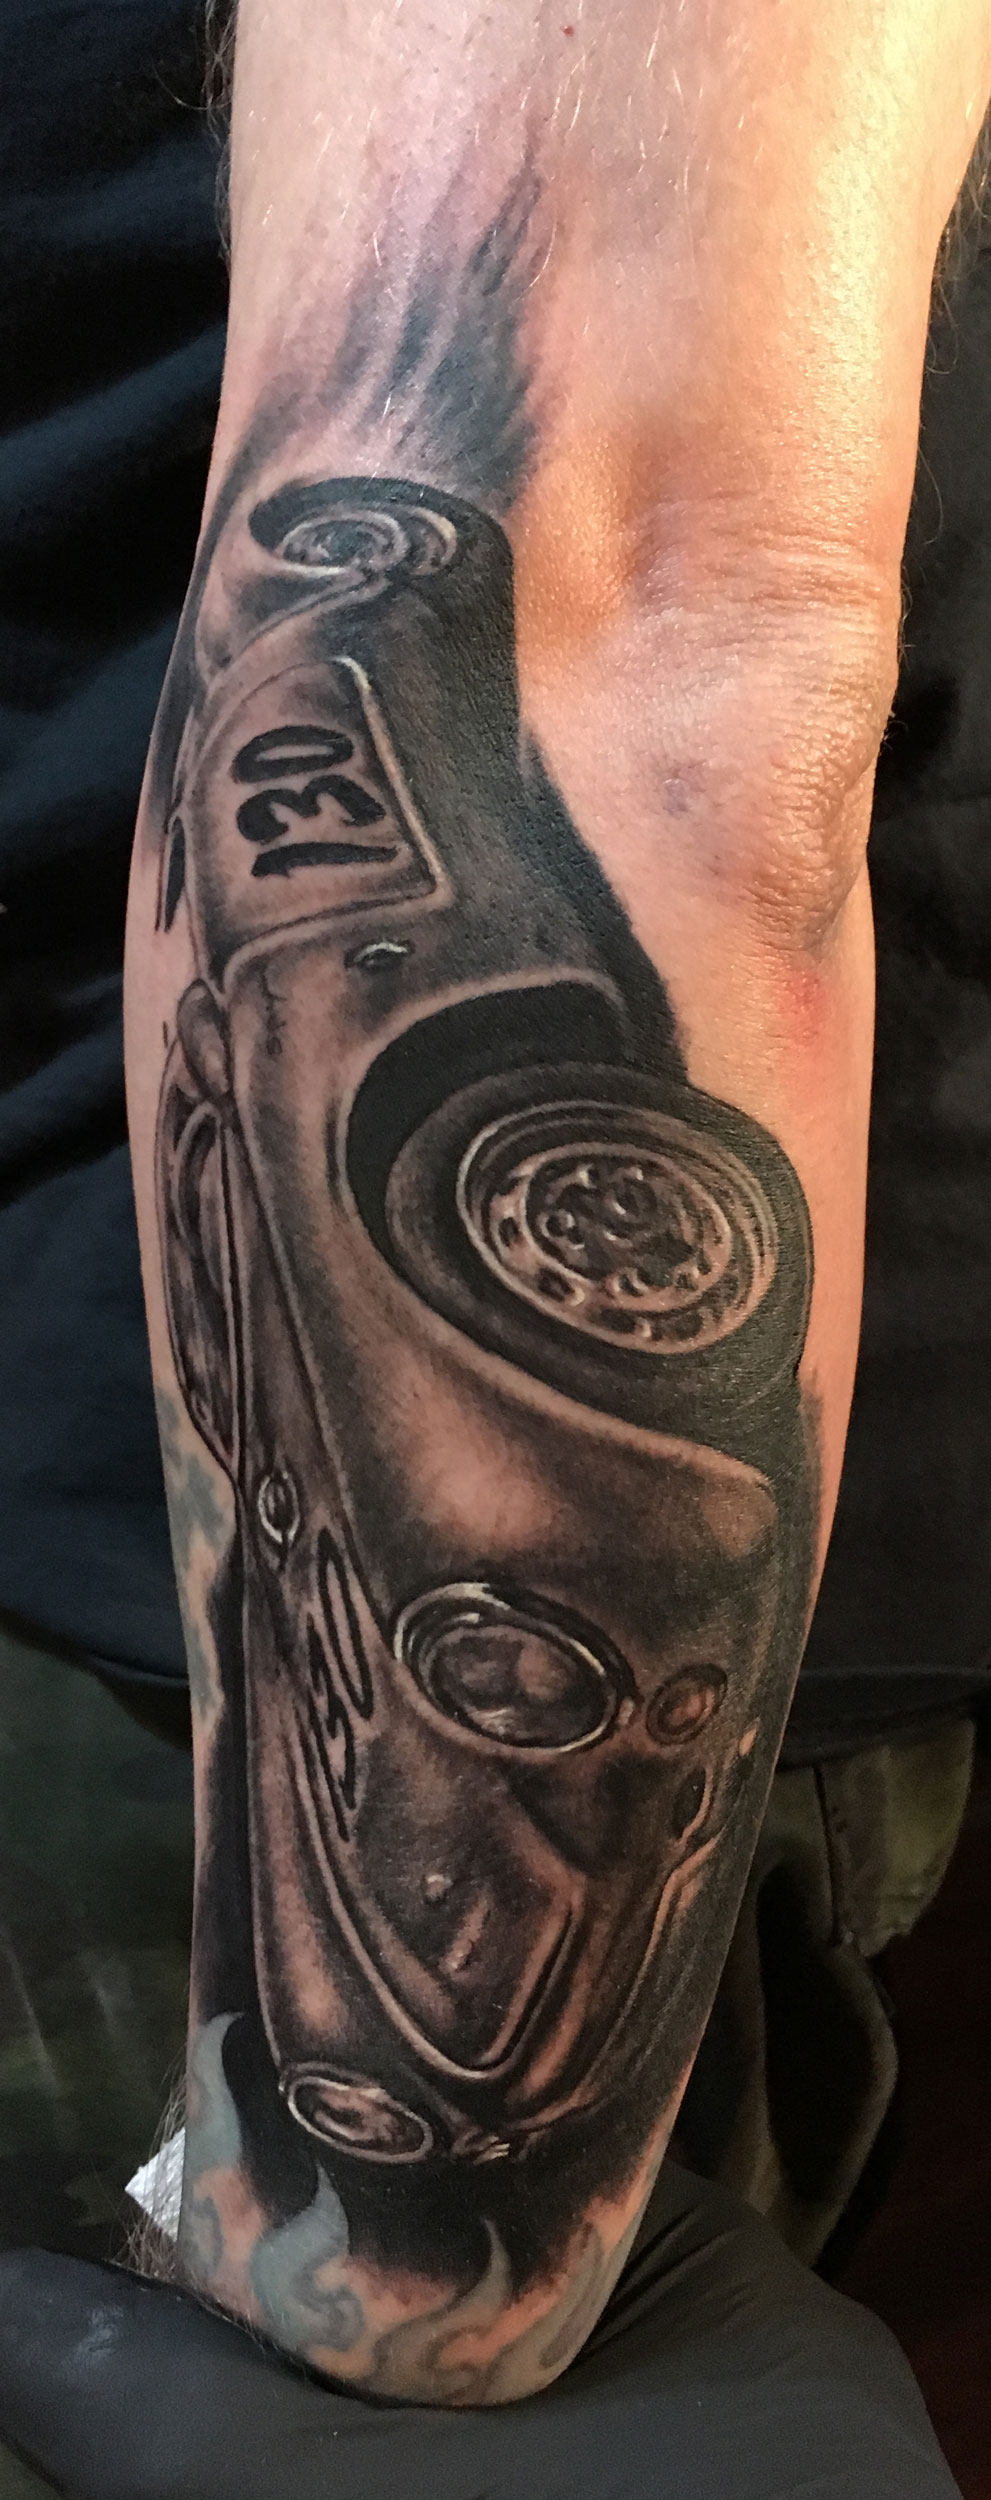 "Black and Grey Portrait Tattoo of ""Little Bastard"", James Dean's Infamous Porsche 550 Spyder which he tragically drove to his death in 1955."